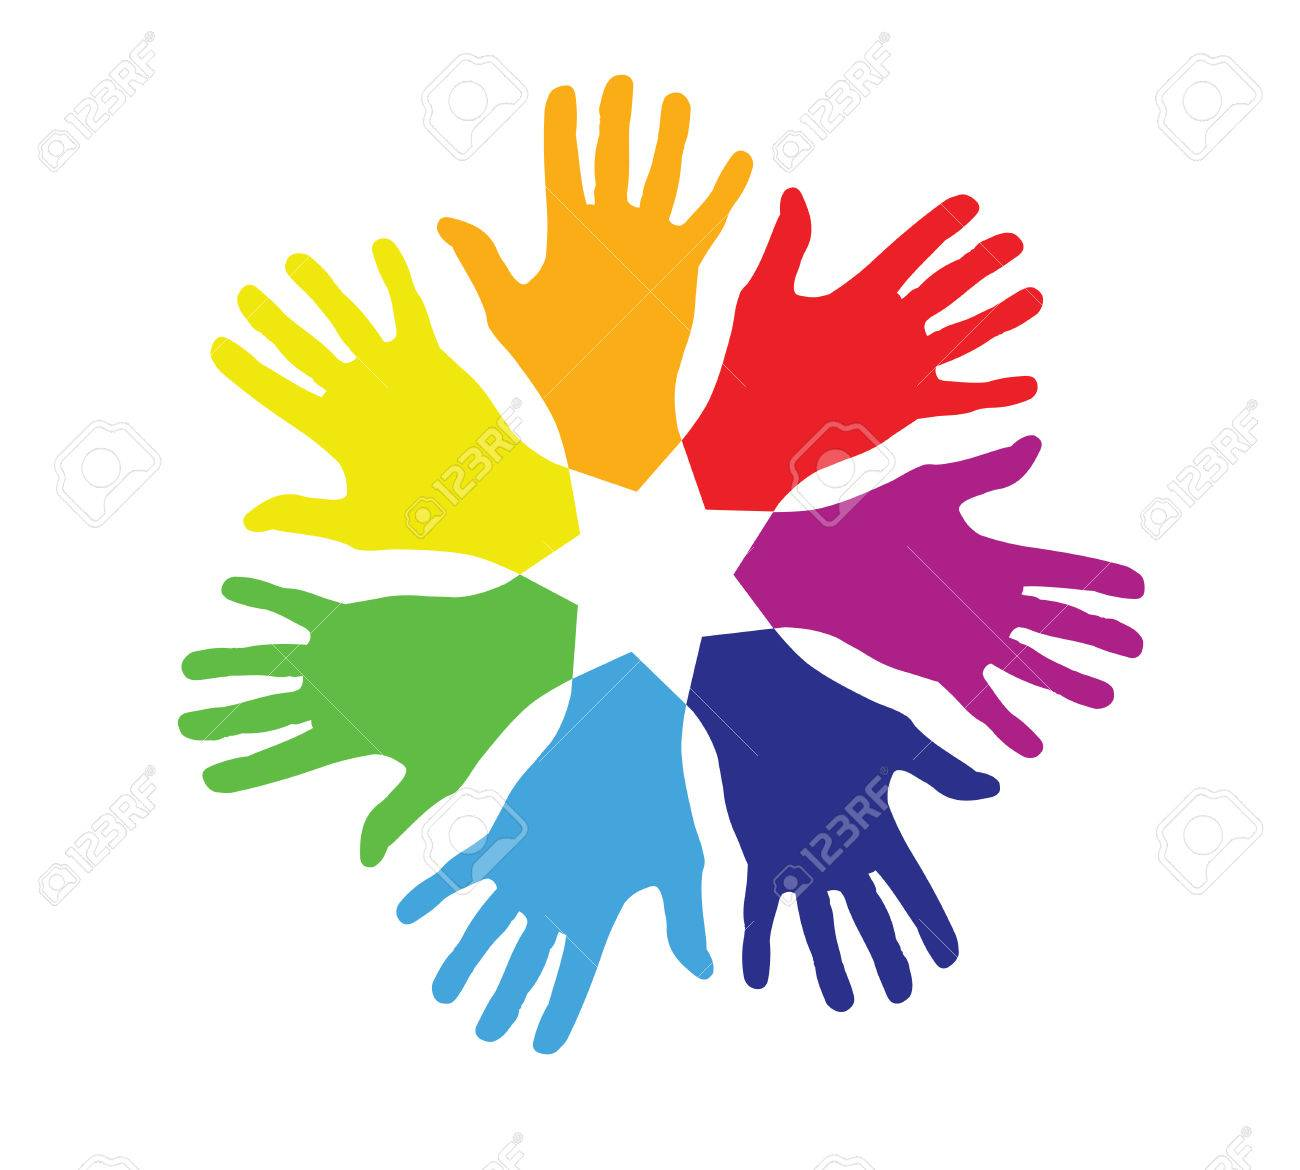 Colored Hands In A Circle Royalty Free Cliparts, Vectors, And Stock Illustration. Image 29854834.